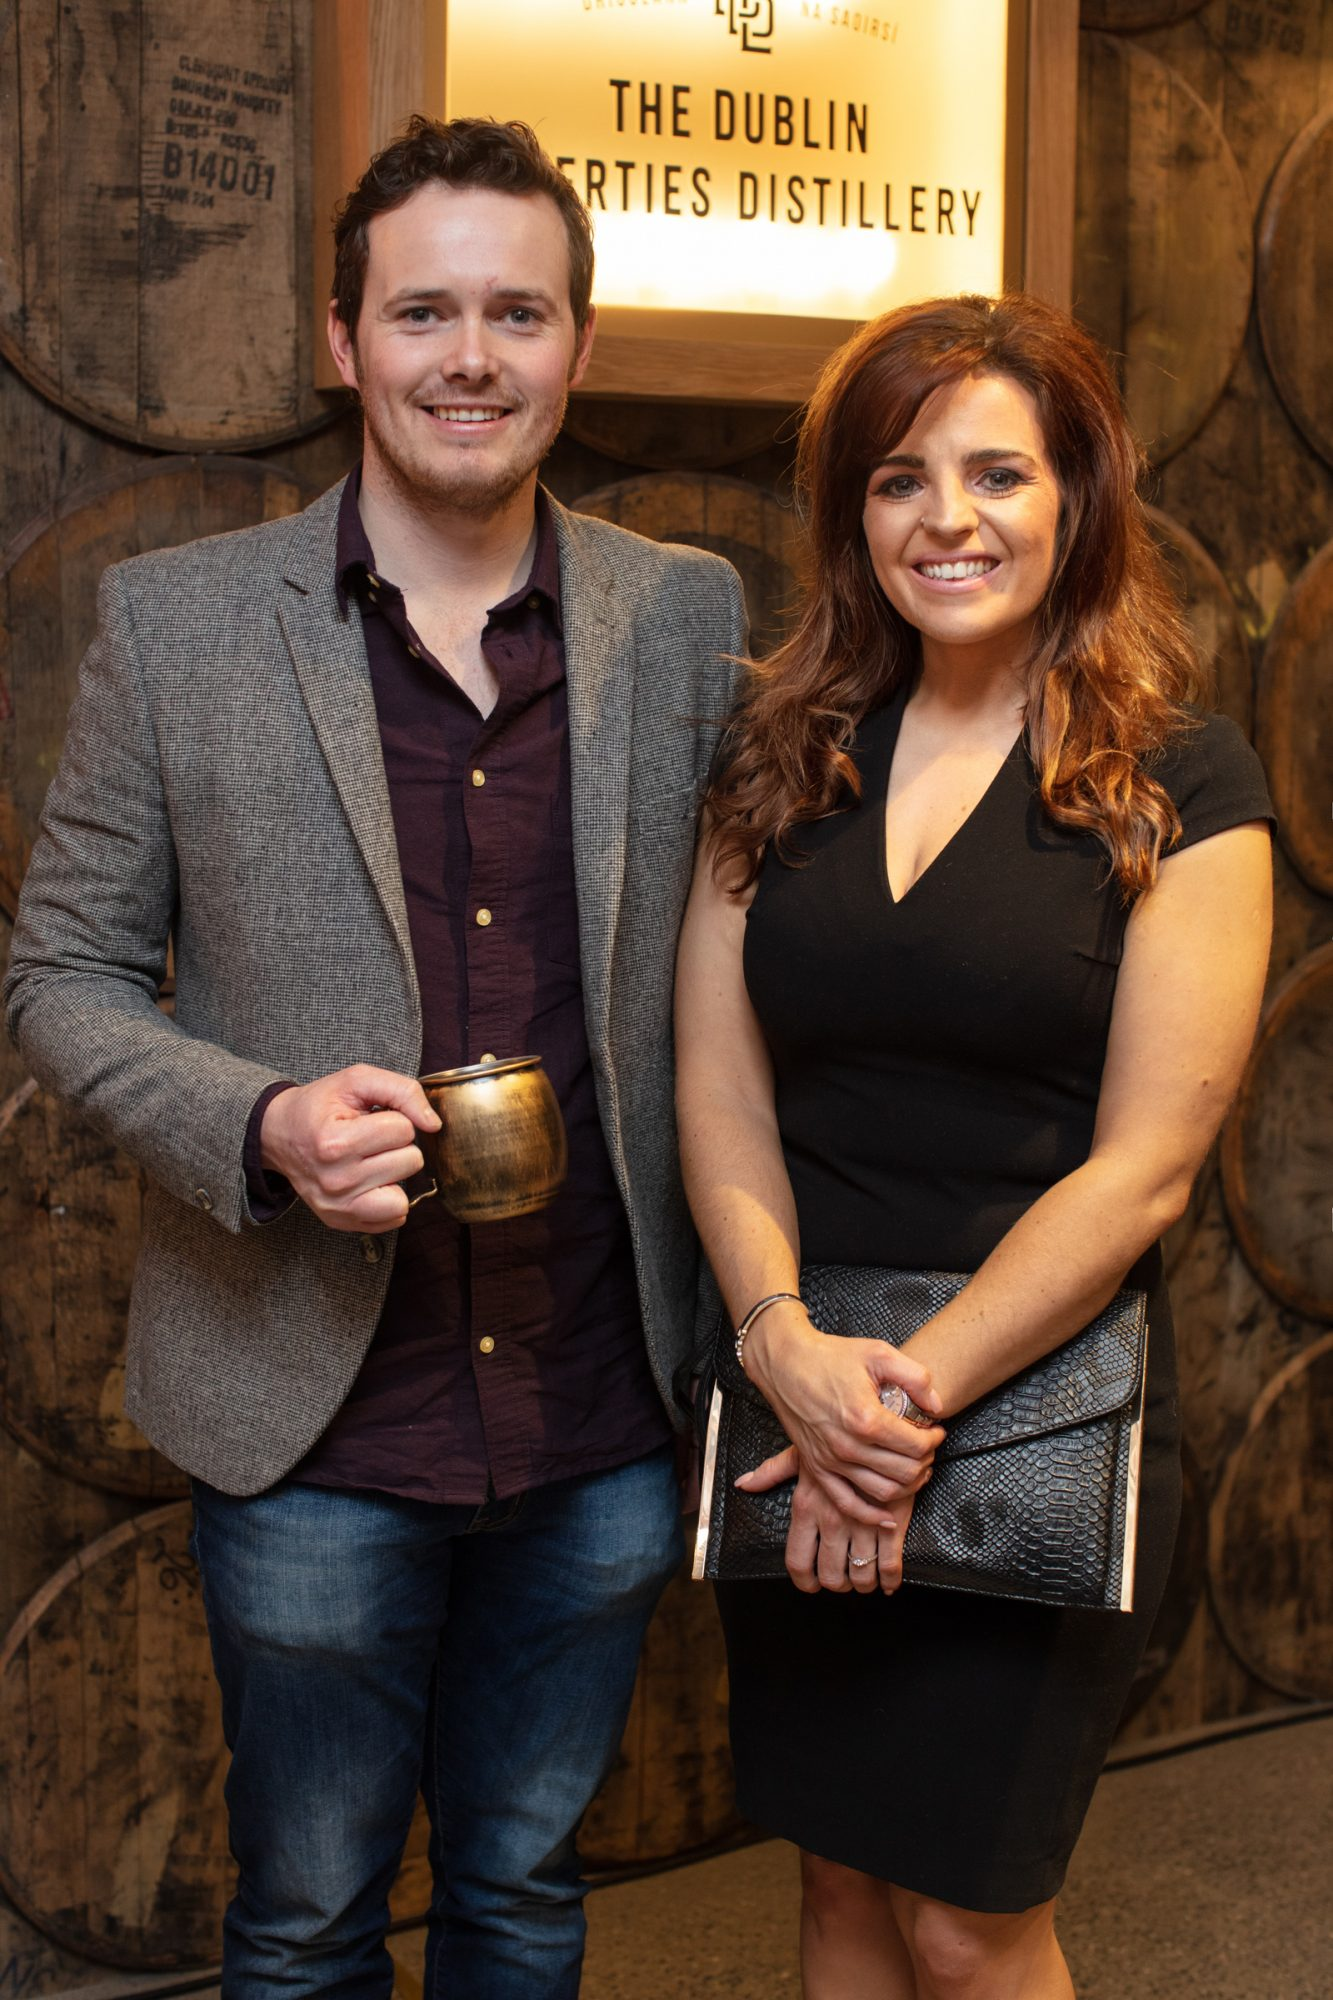 Enda Fitzpatrick & Kelly Forsyth pictured at the preview of The Dublin Liberties Distillery, the much anticipated new craft distillery in the heart of the Liberties. Photo: Anthony Woods.